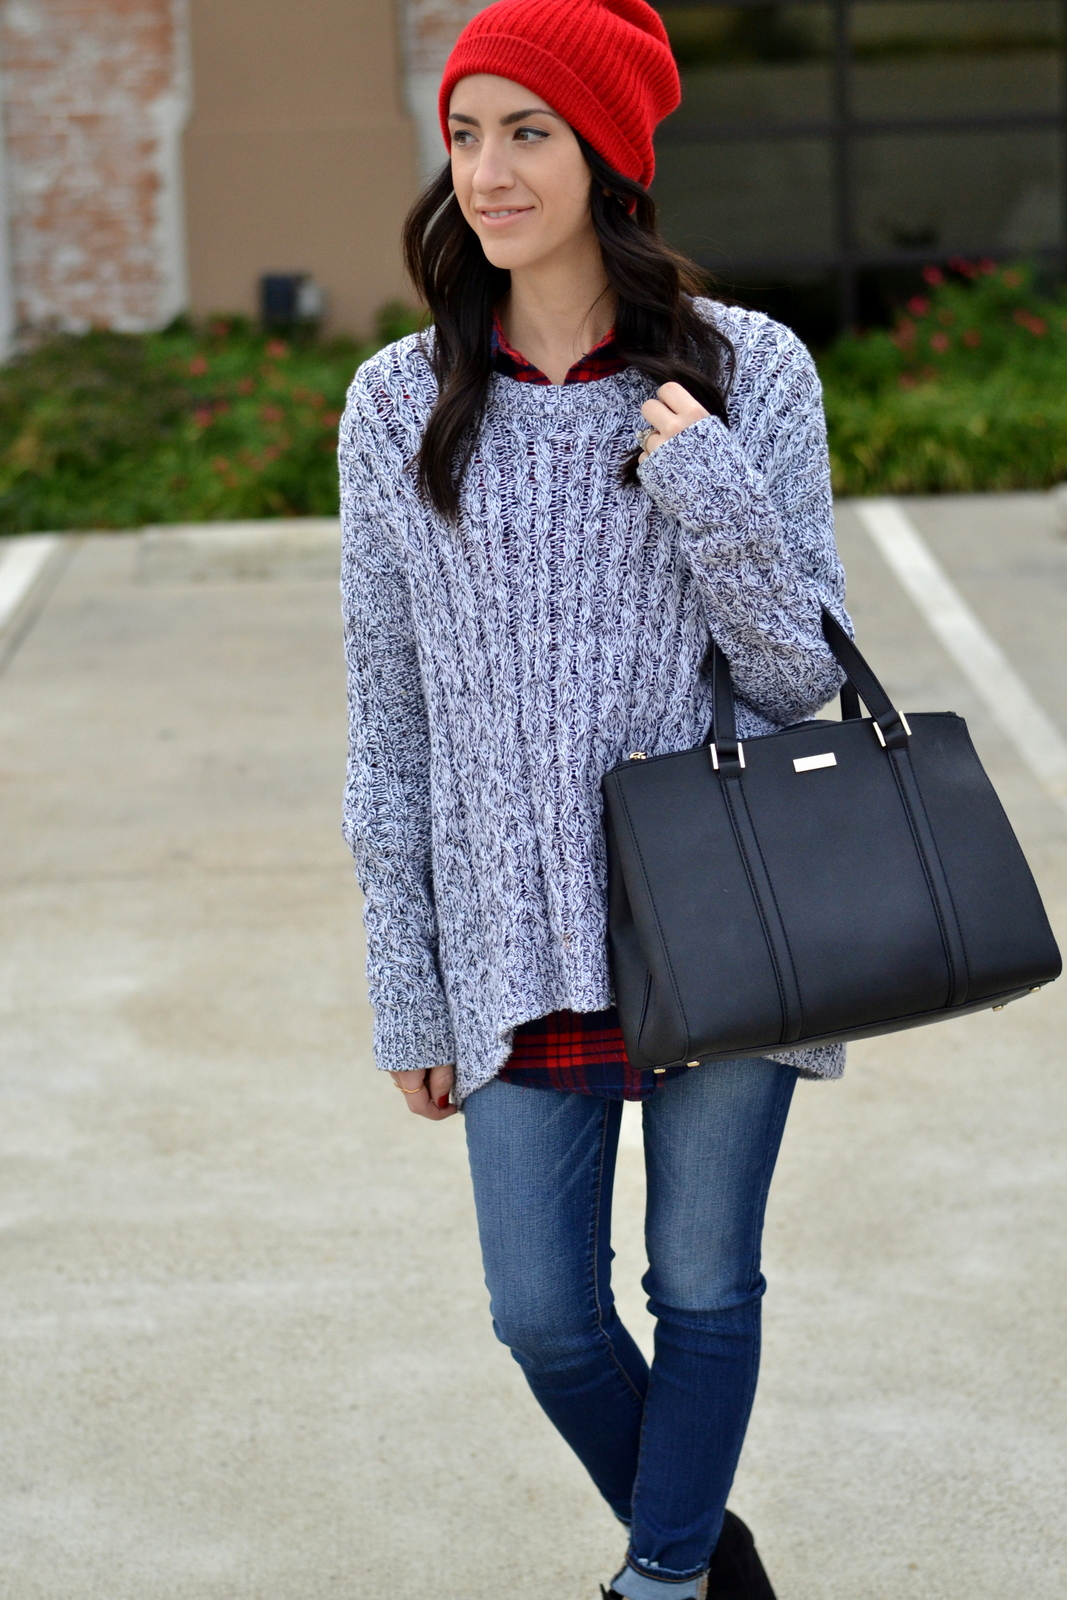 Winter Layers_Black Purse_Knit Sweater_Flannel